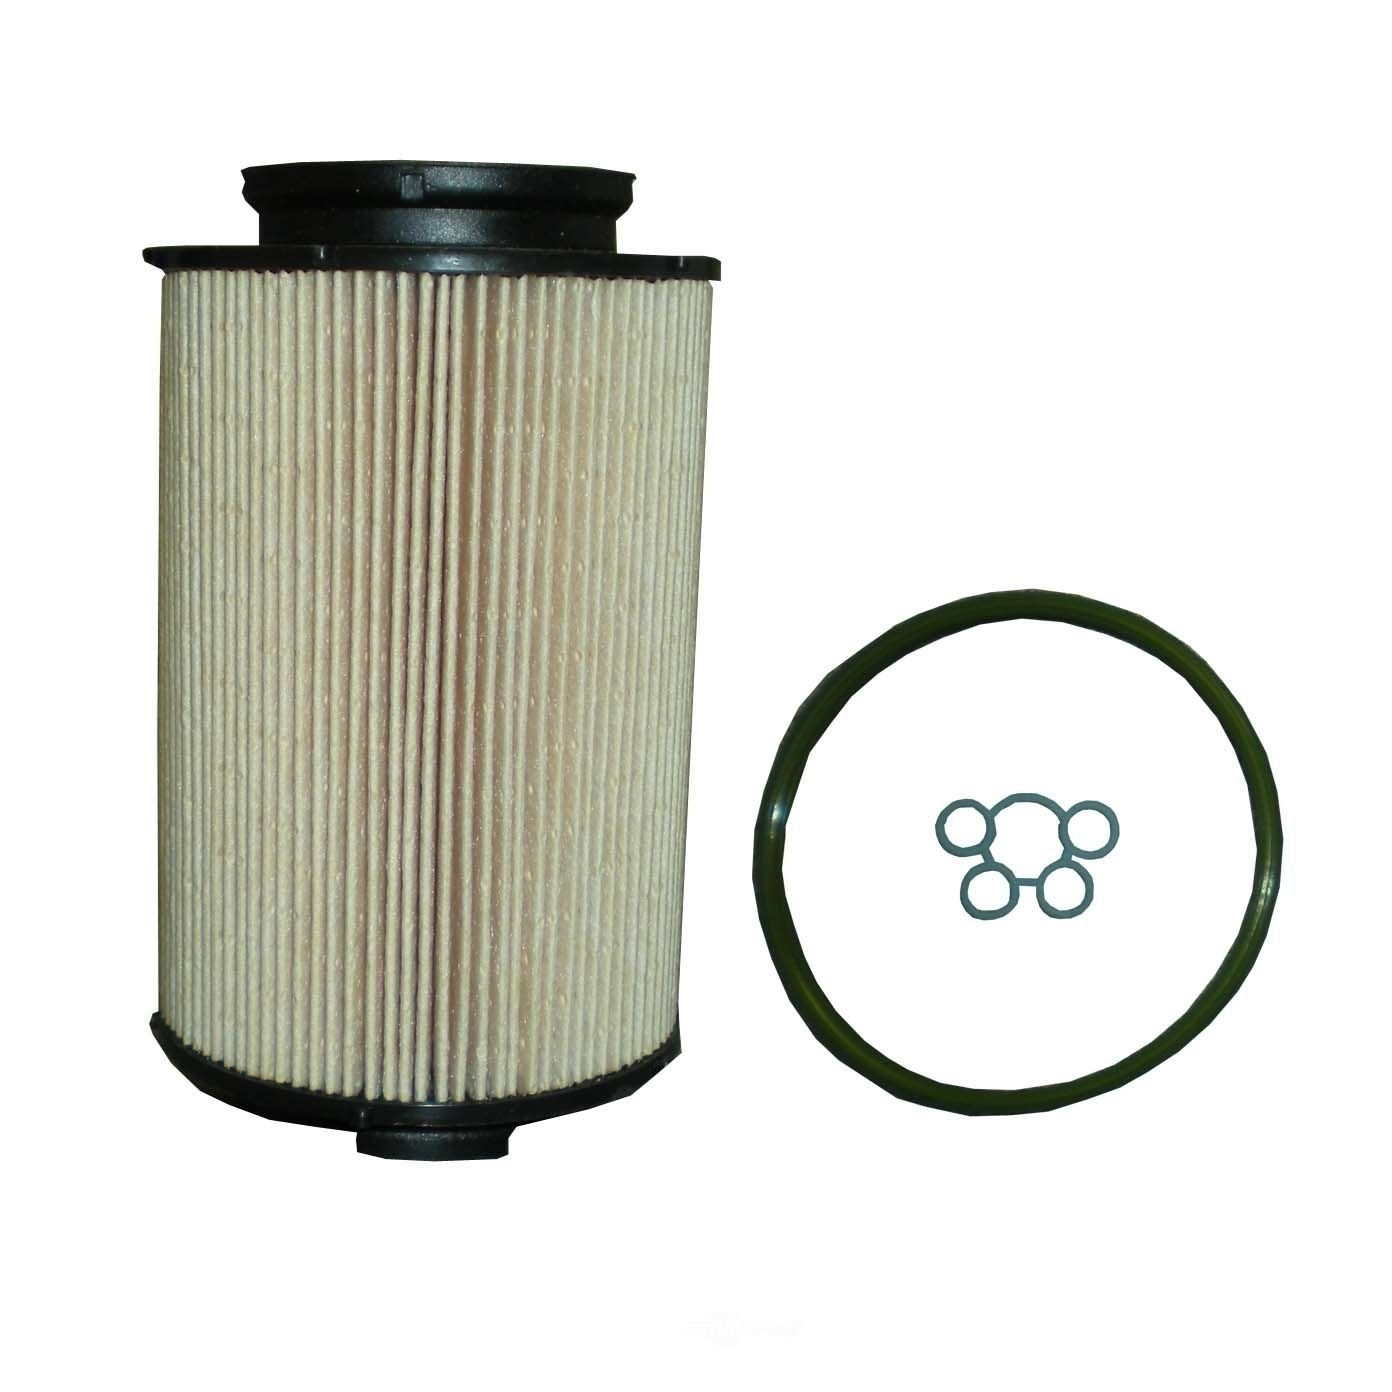 PUREZONE CABIN, FUEL, TRANS FILTERS - OE Type Fuel Filter - PZF 6-33037